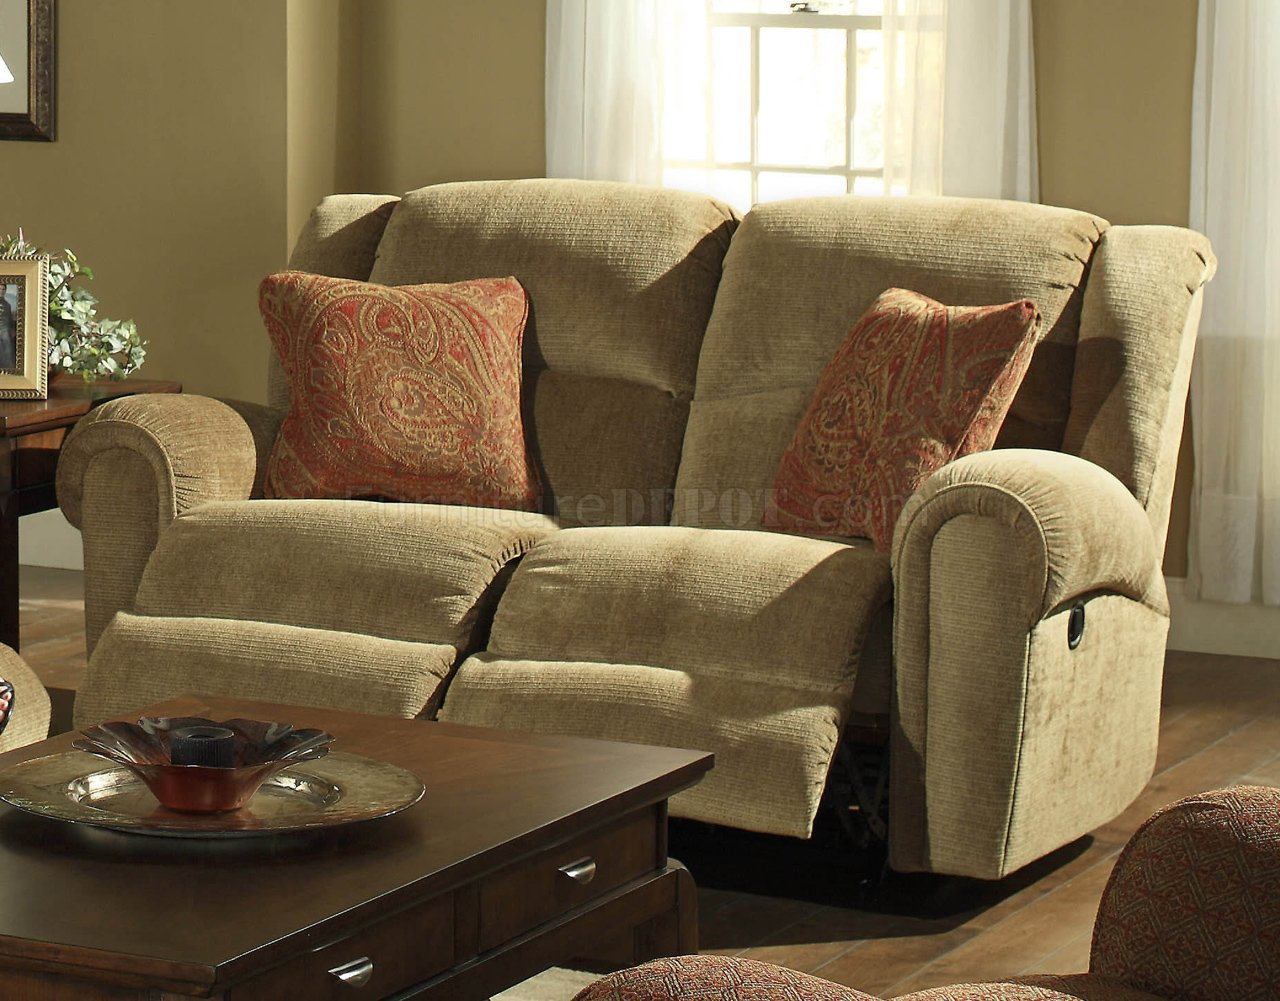 Havana Fabric Modern Grove Park Reclining Sofa Loveseat Set